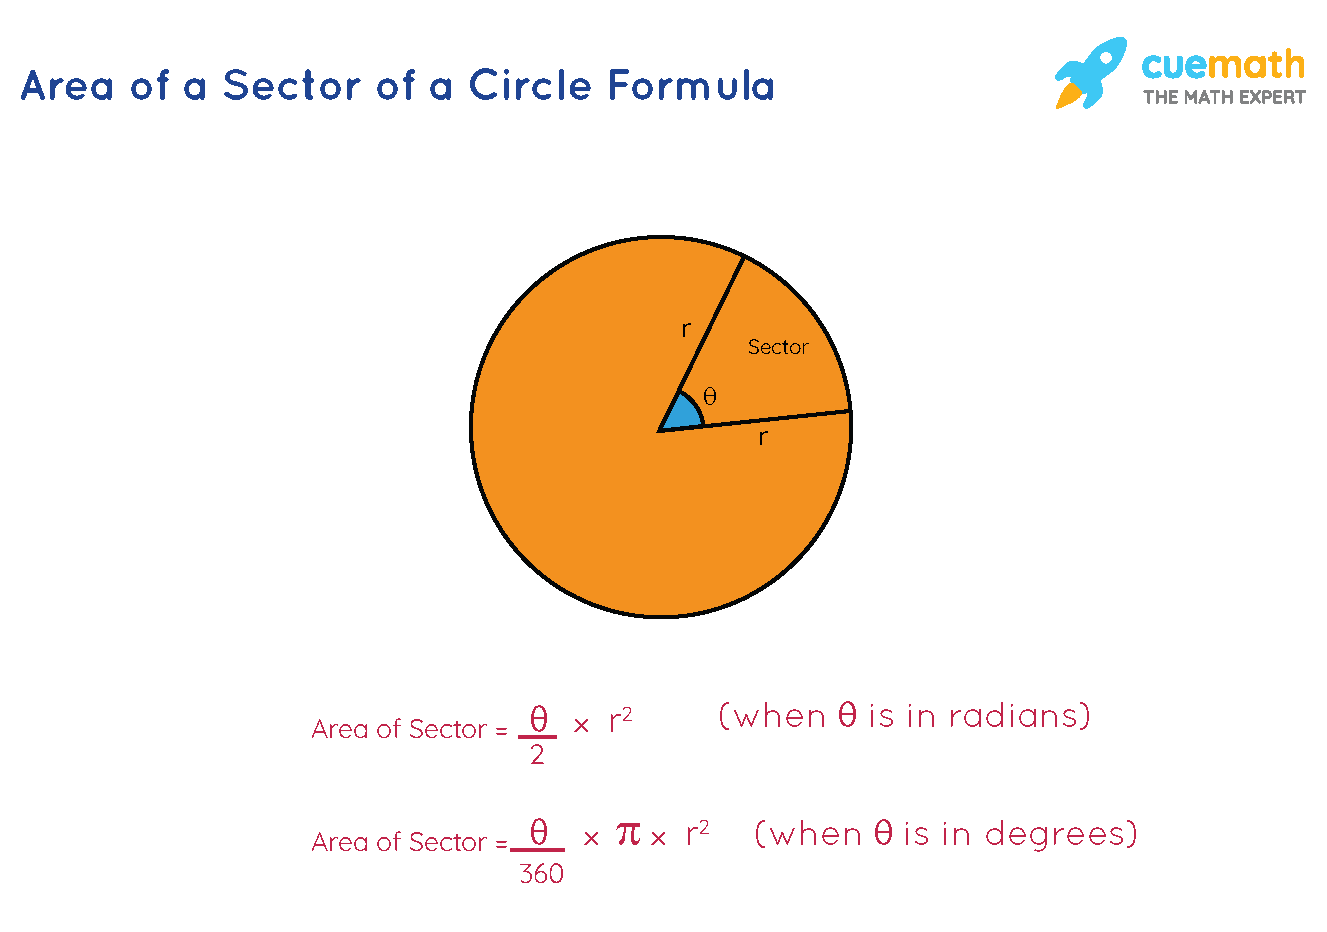 area of a sector of a circle formula